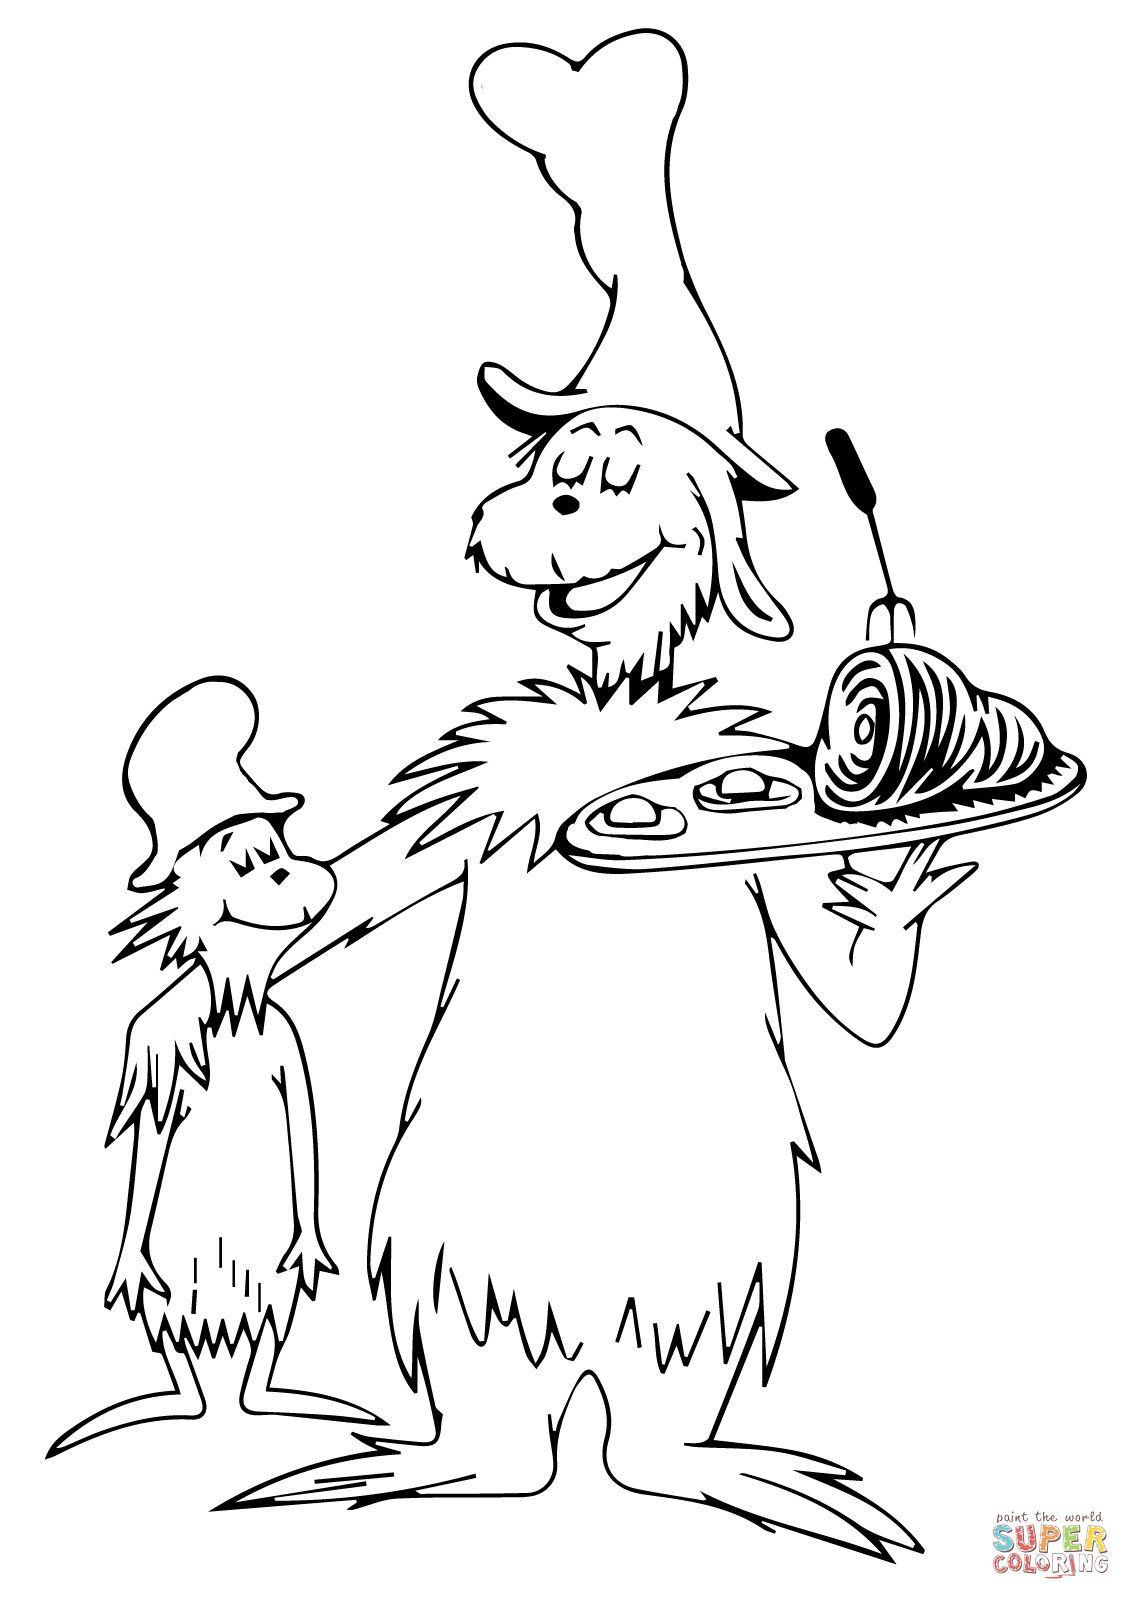 Uncategorized Cat And The Hat Coloring Pages cat in the hat coloring sheet pinned by pediastaff visit green eggs and ham page dr seuss